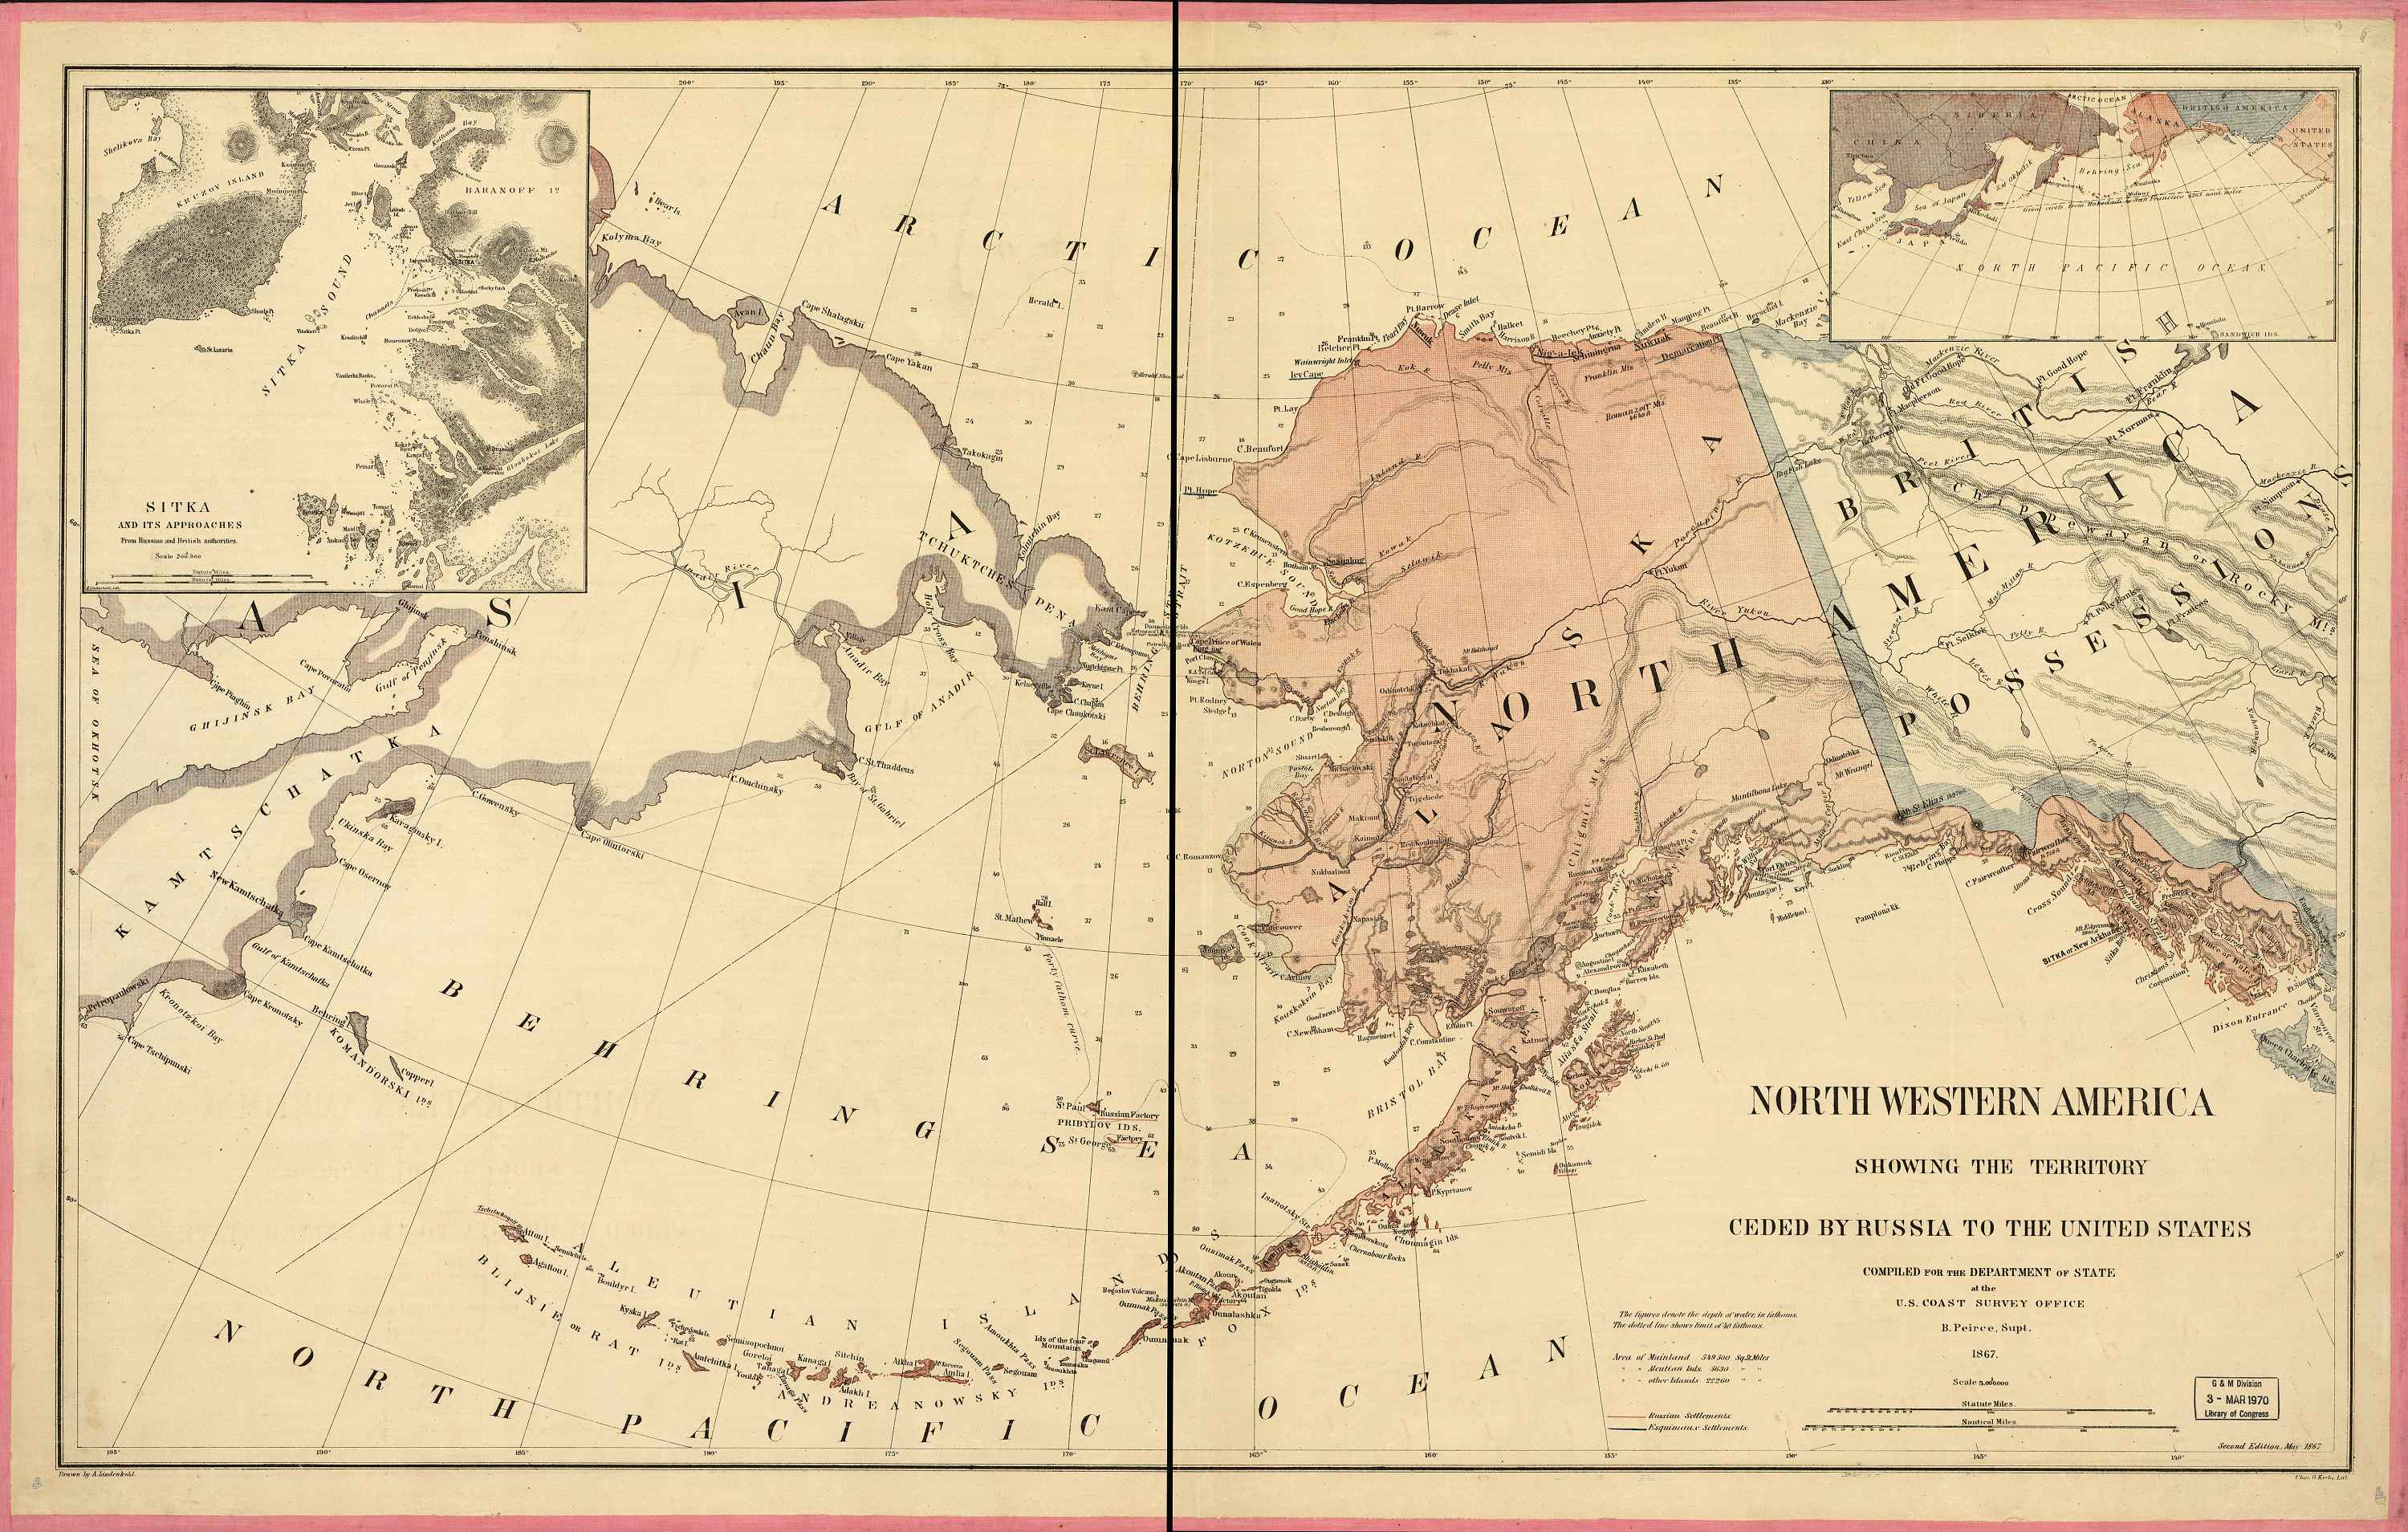 The USGenWeb Archives Digital Map Library Alaska Maps Index - Alaska maps